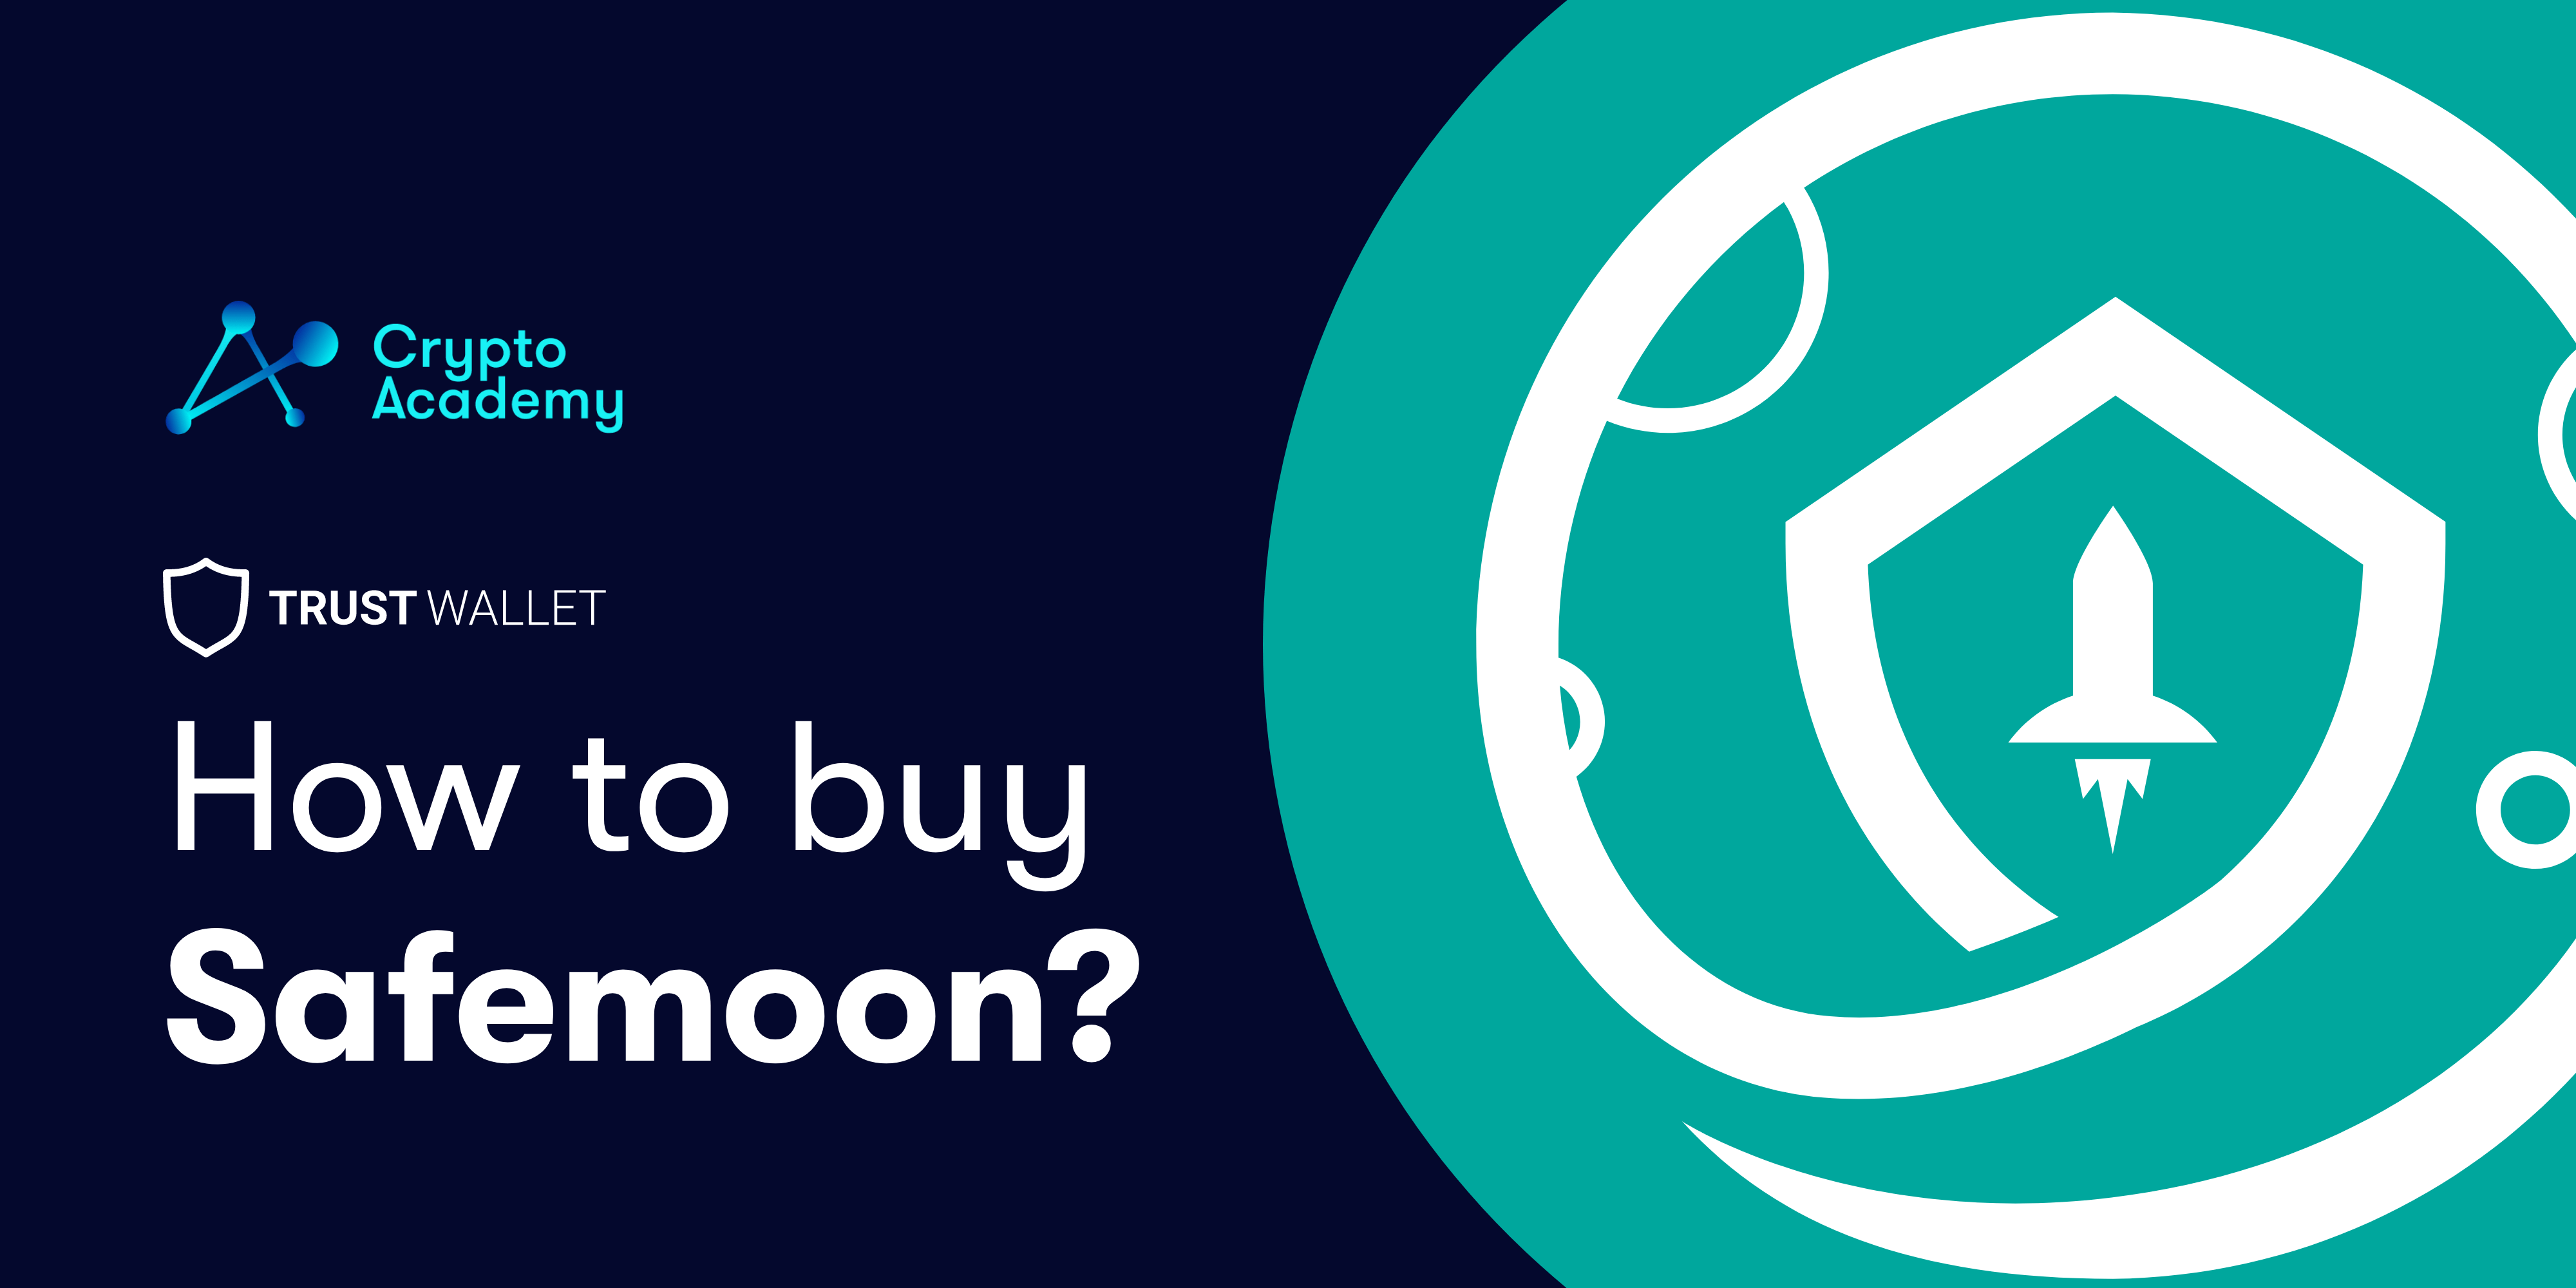 How to Buy Safemoon in Trust Wallet? - A Detailed Guide